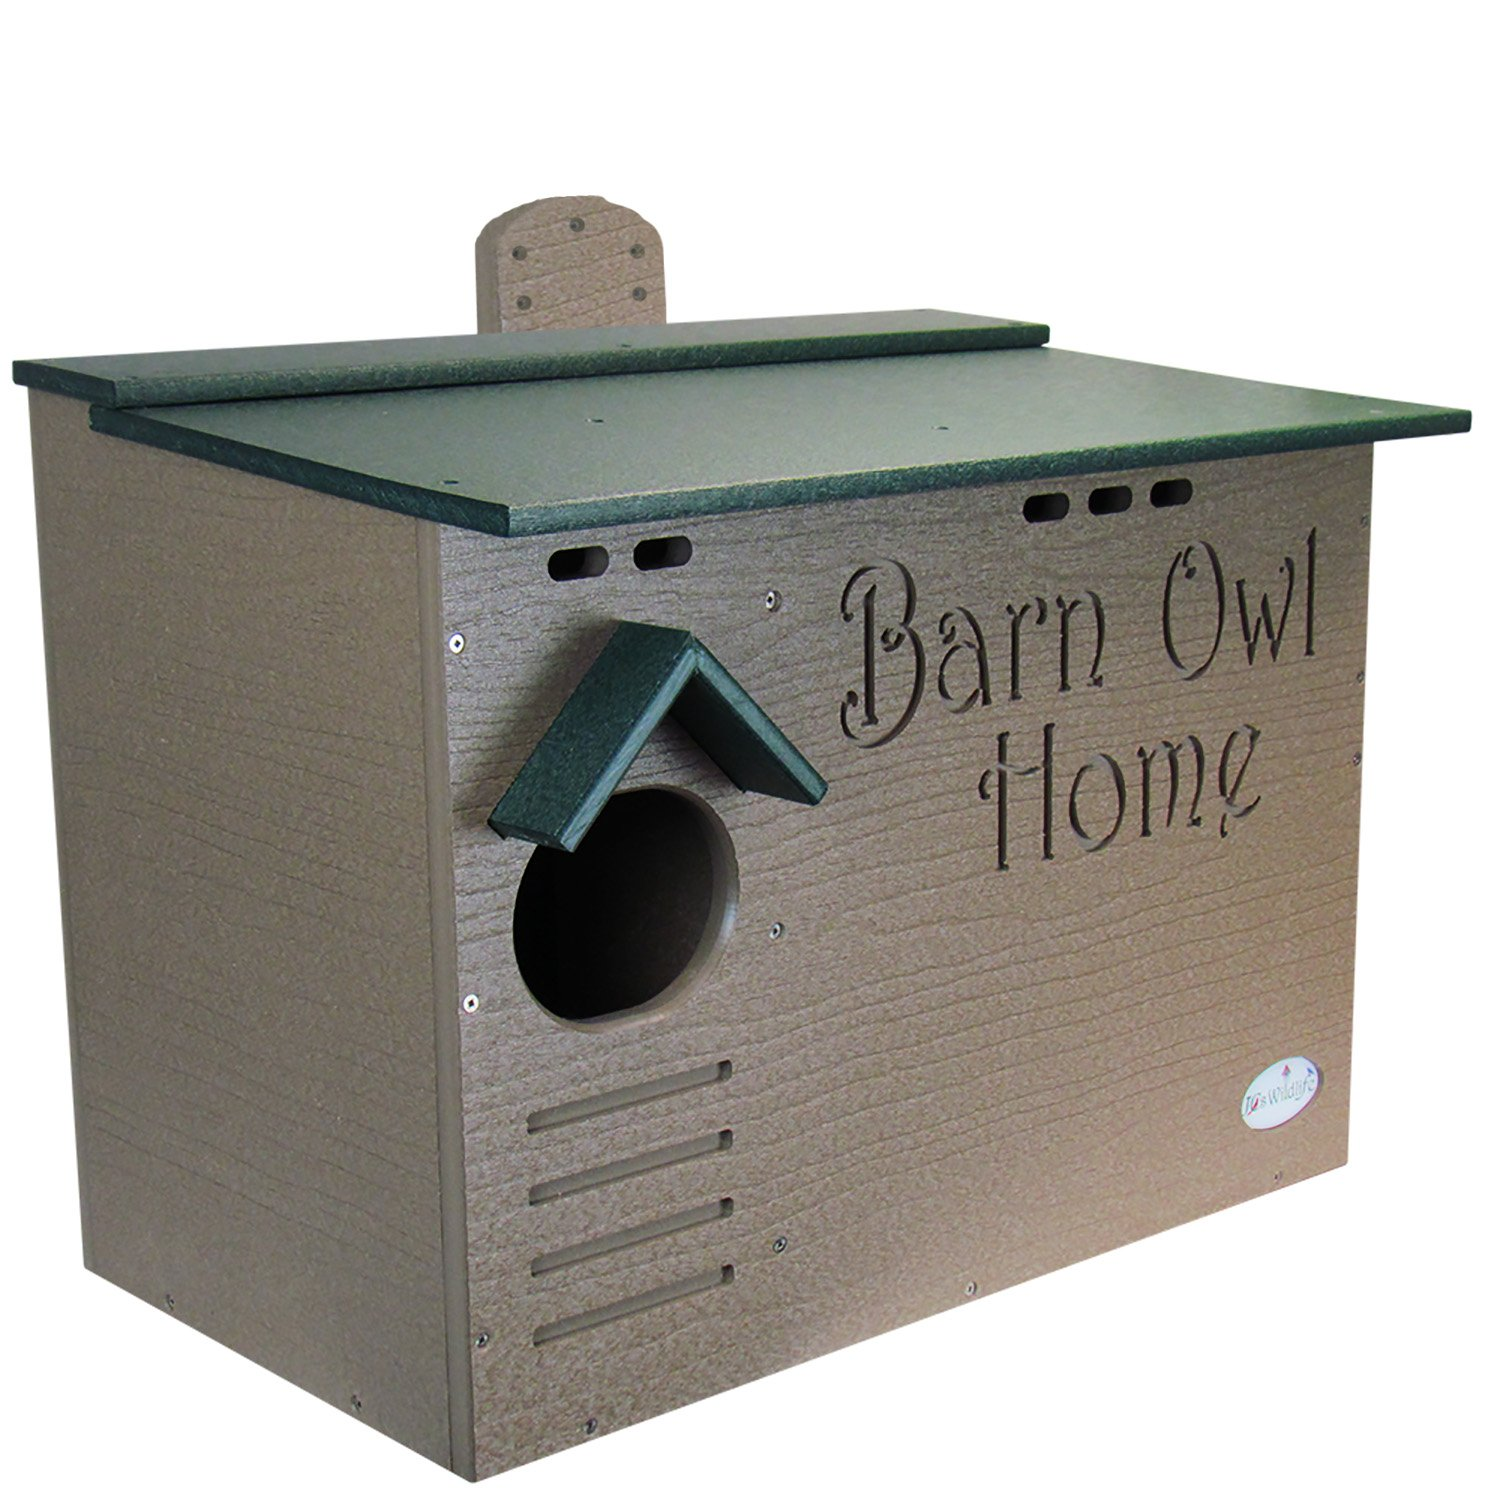 JCs Wildlife Barn Owl Nesting House, Large home made w/ Recycled Poly Lumber by JCs Wildlife